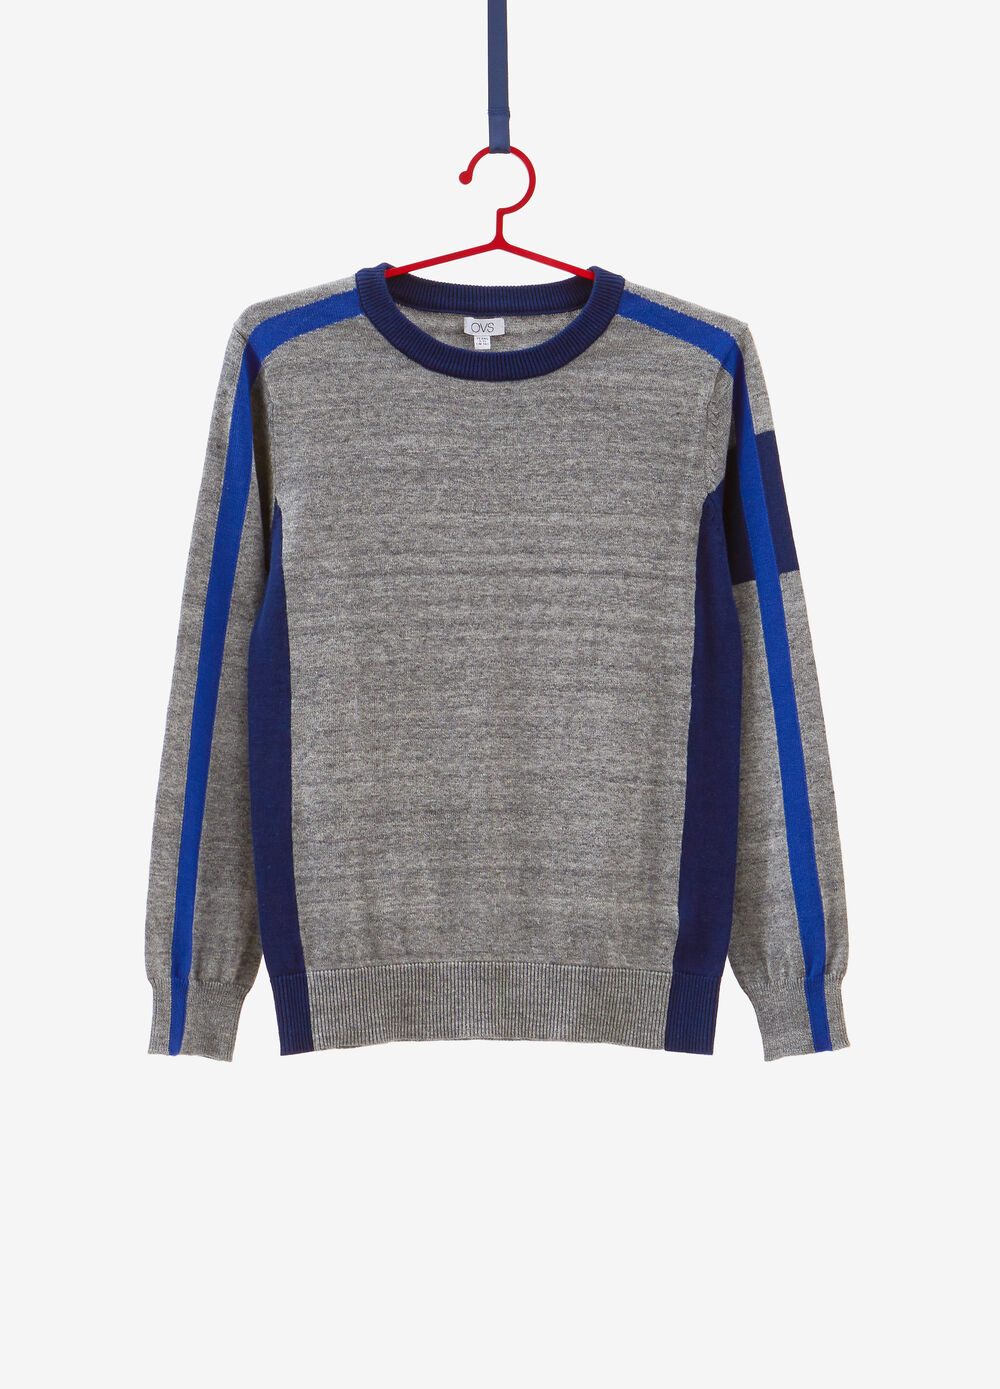 Mélange knitted pullover with inserts